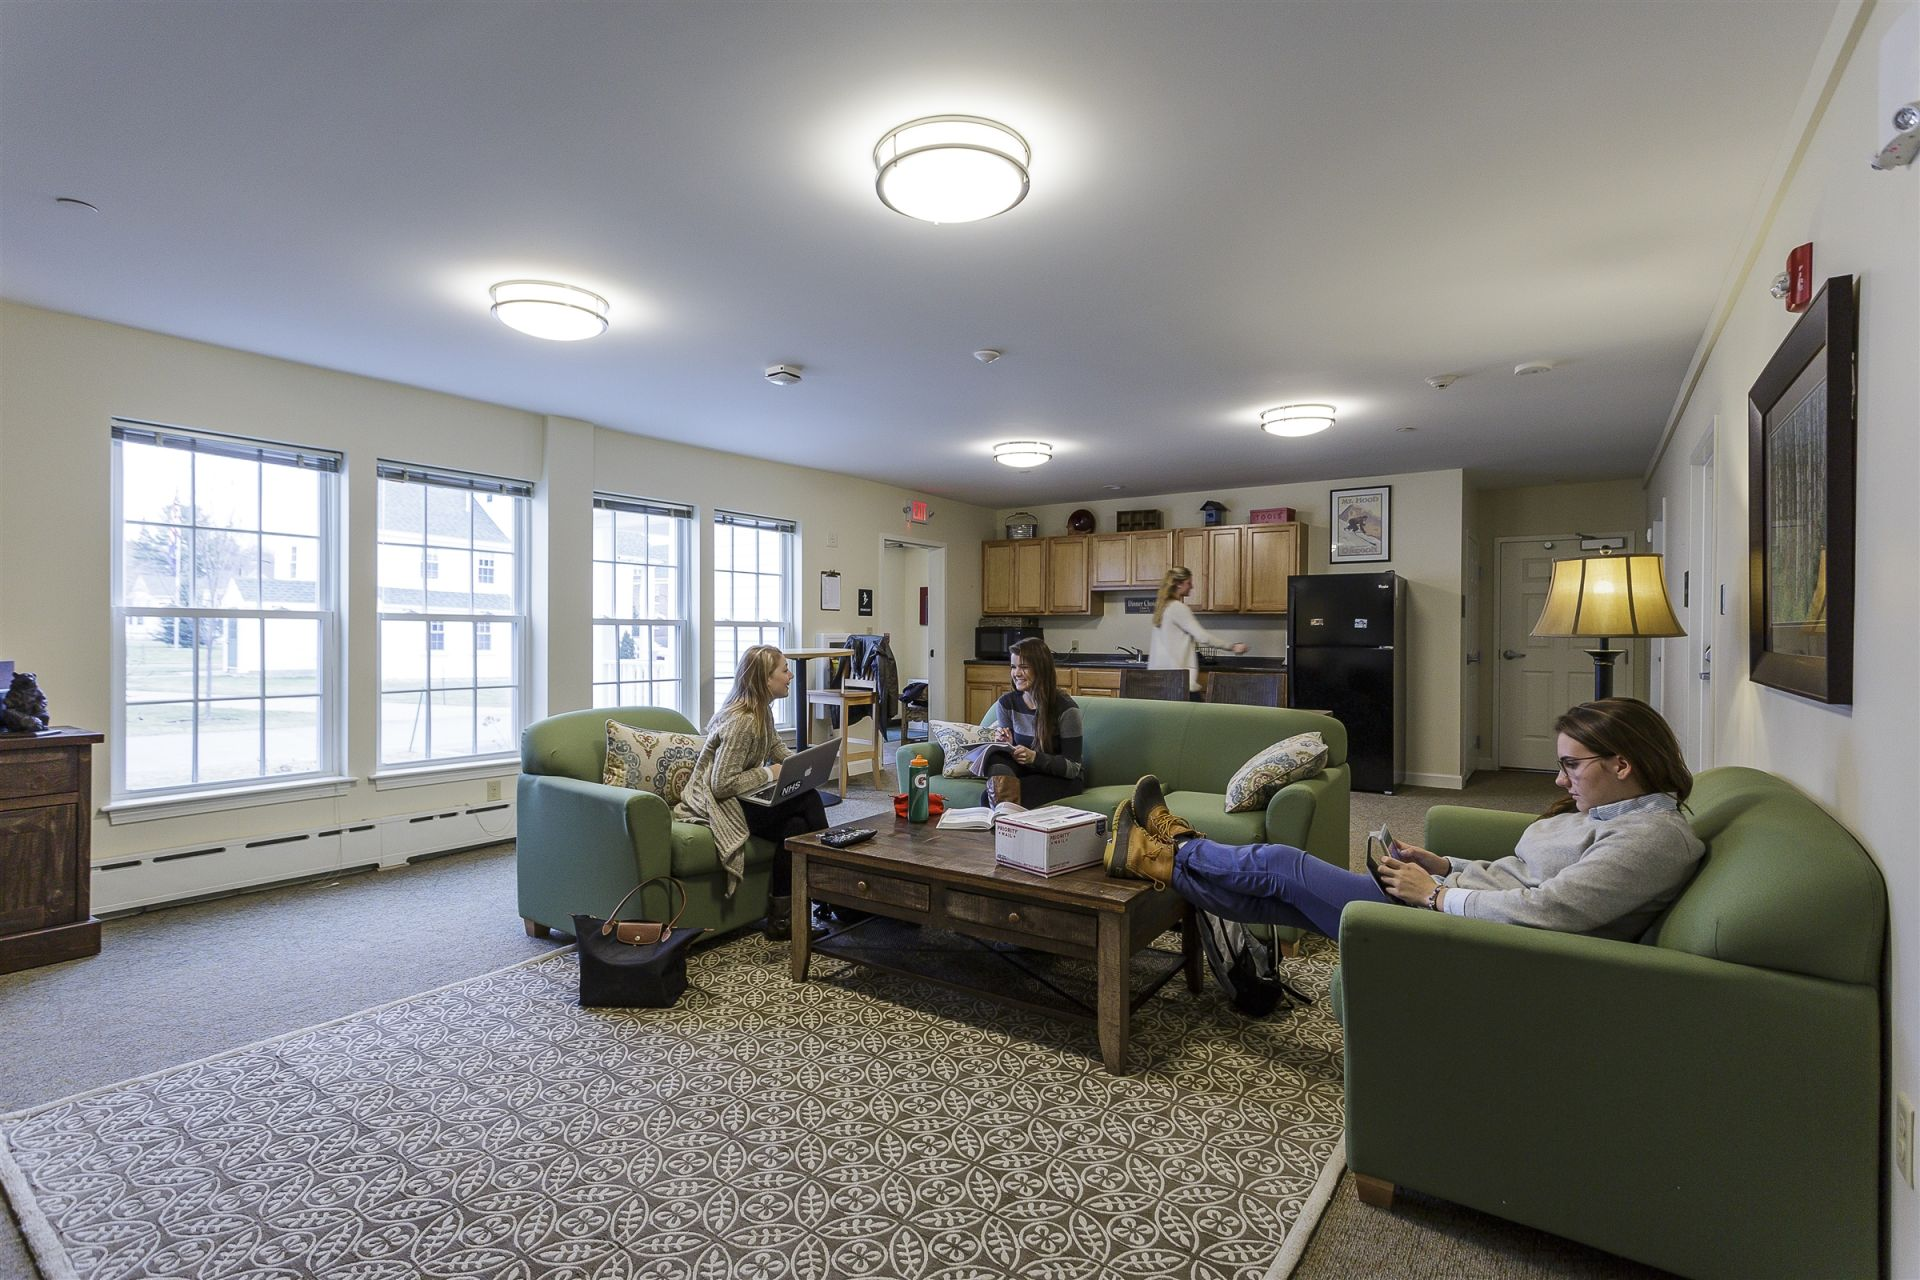 Students live together in residential houses with their dorm parents.